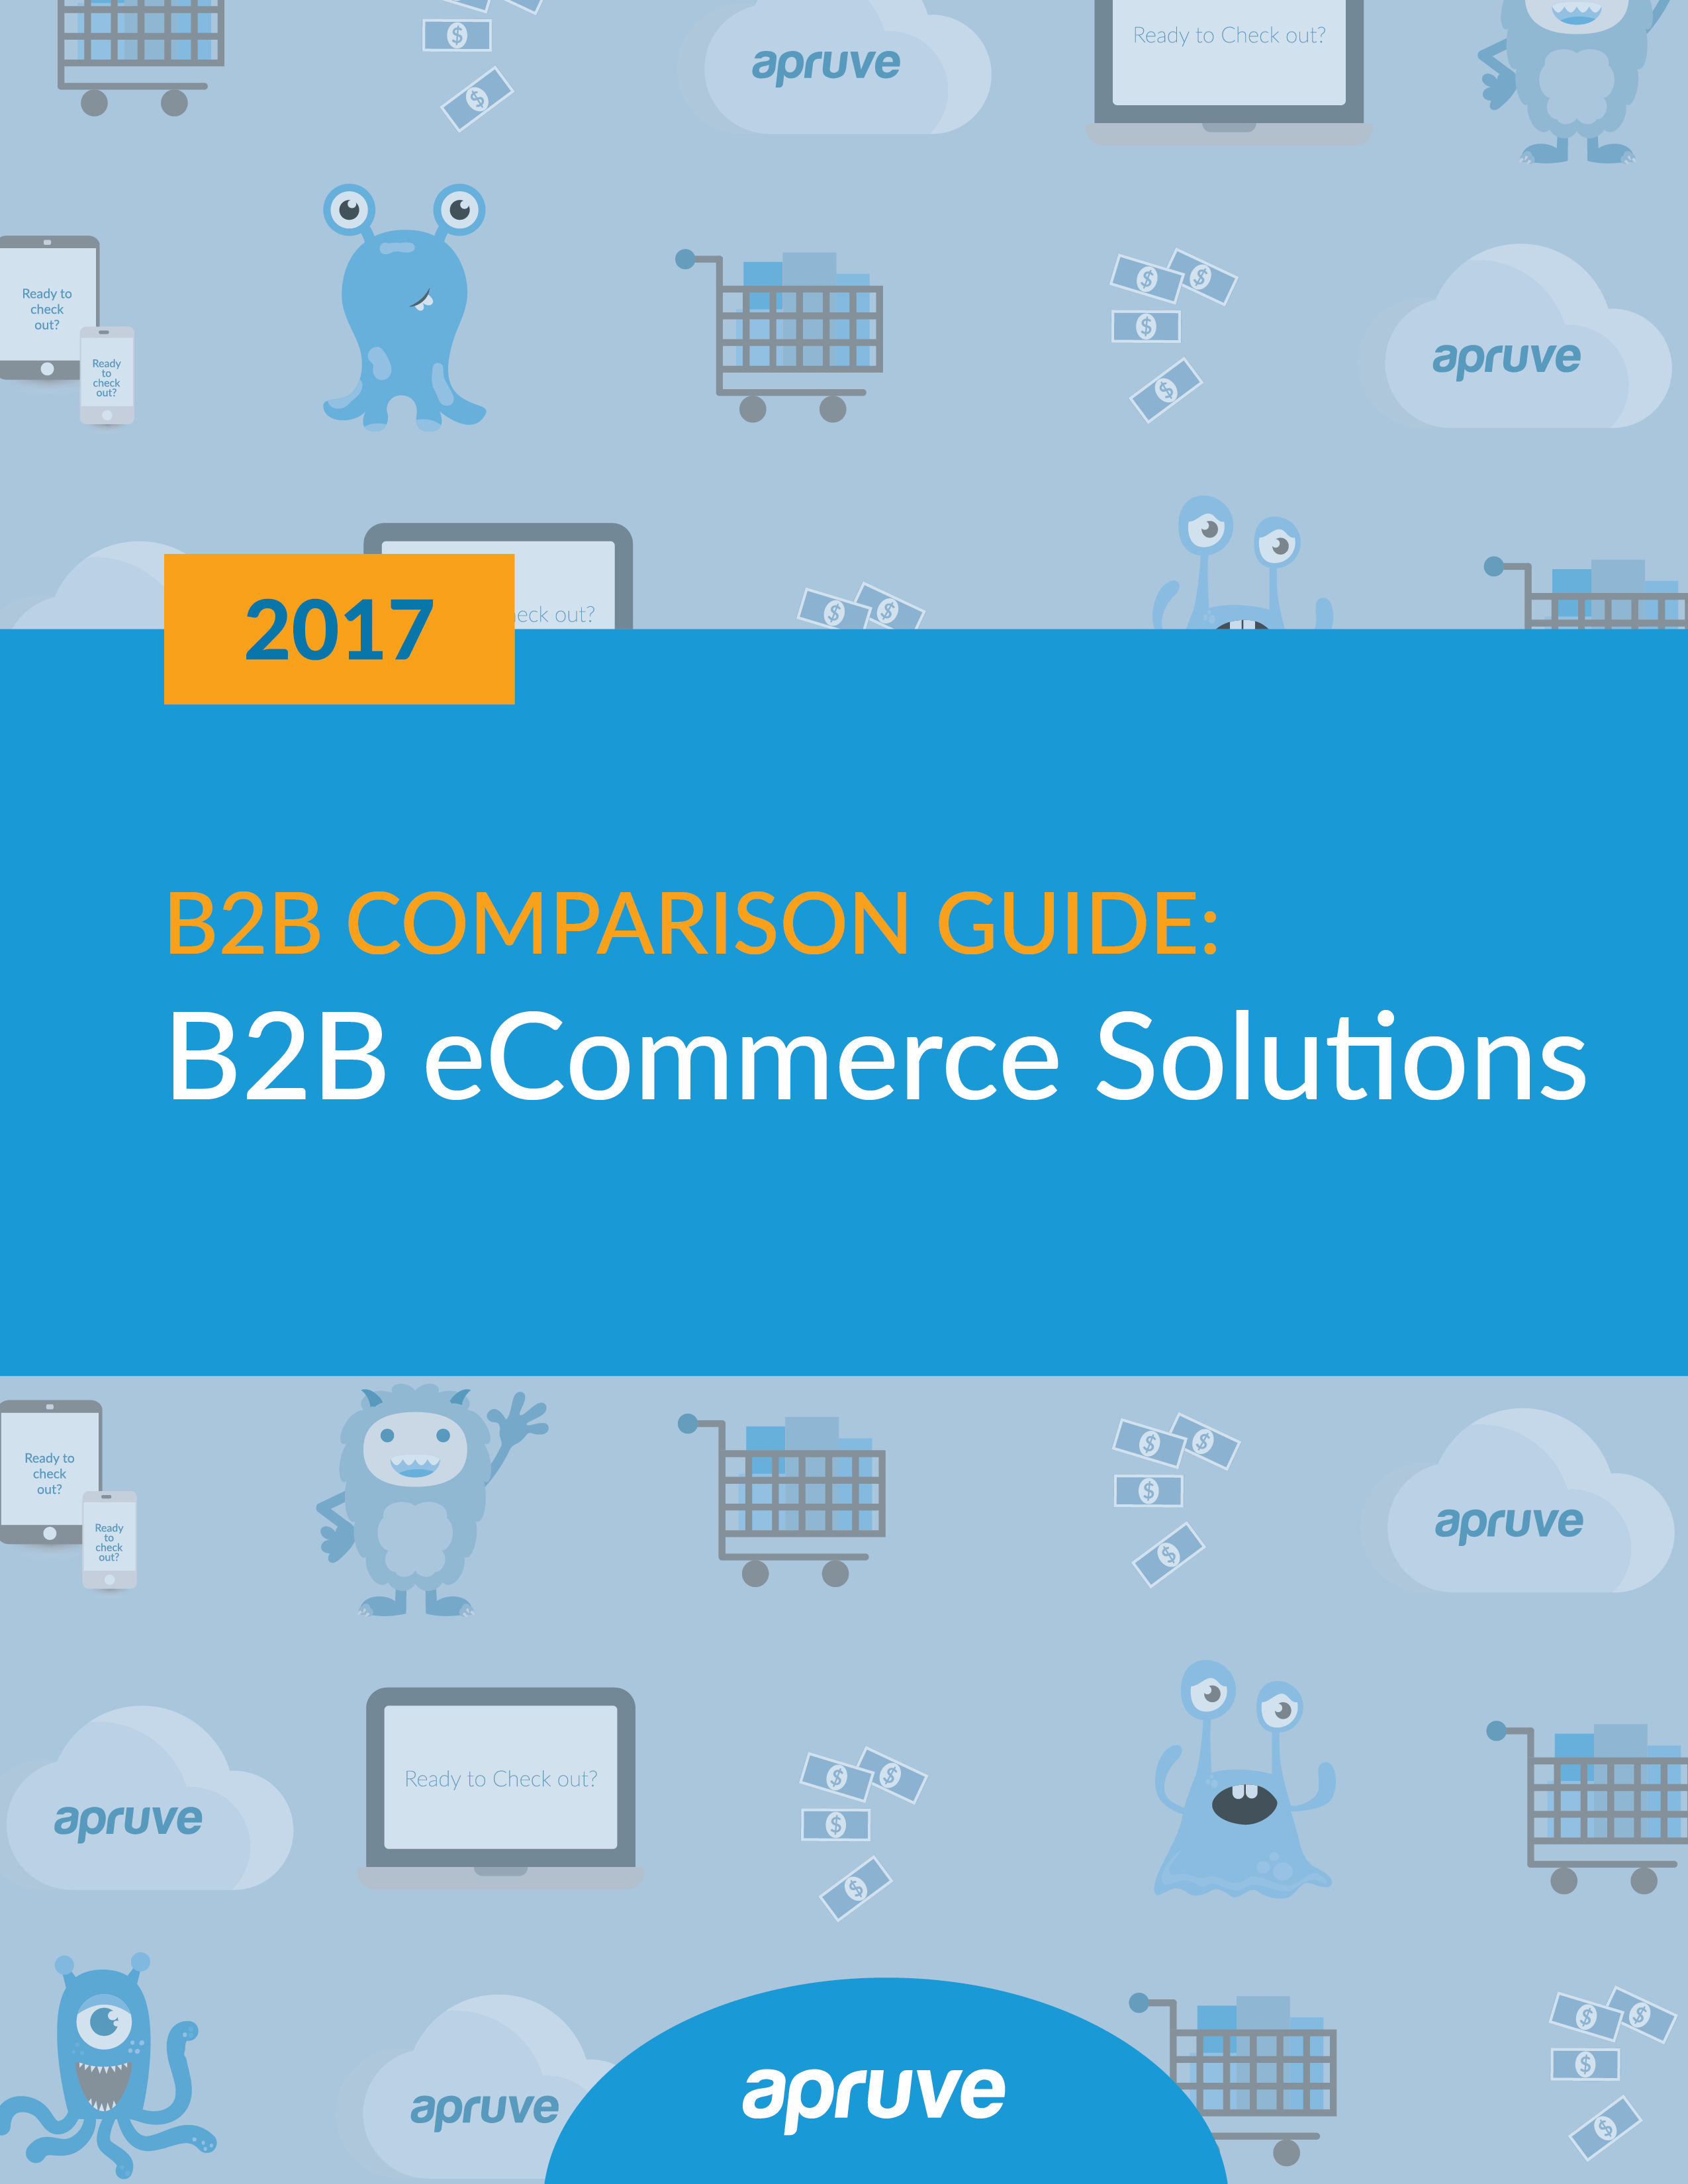 B2B Comparison Guide: B2B eCommerce Solutions